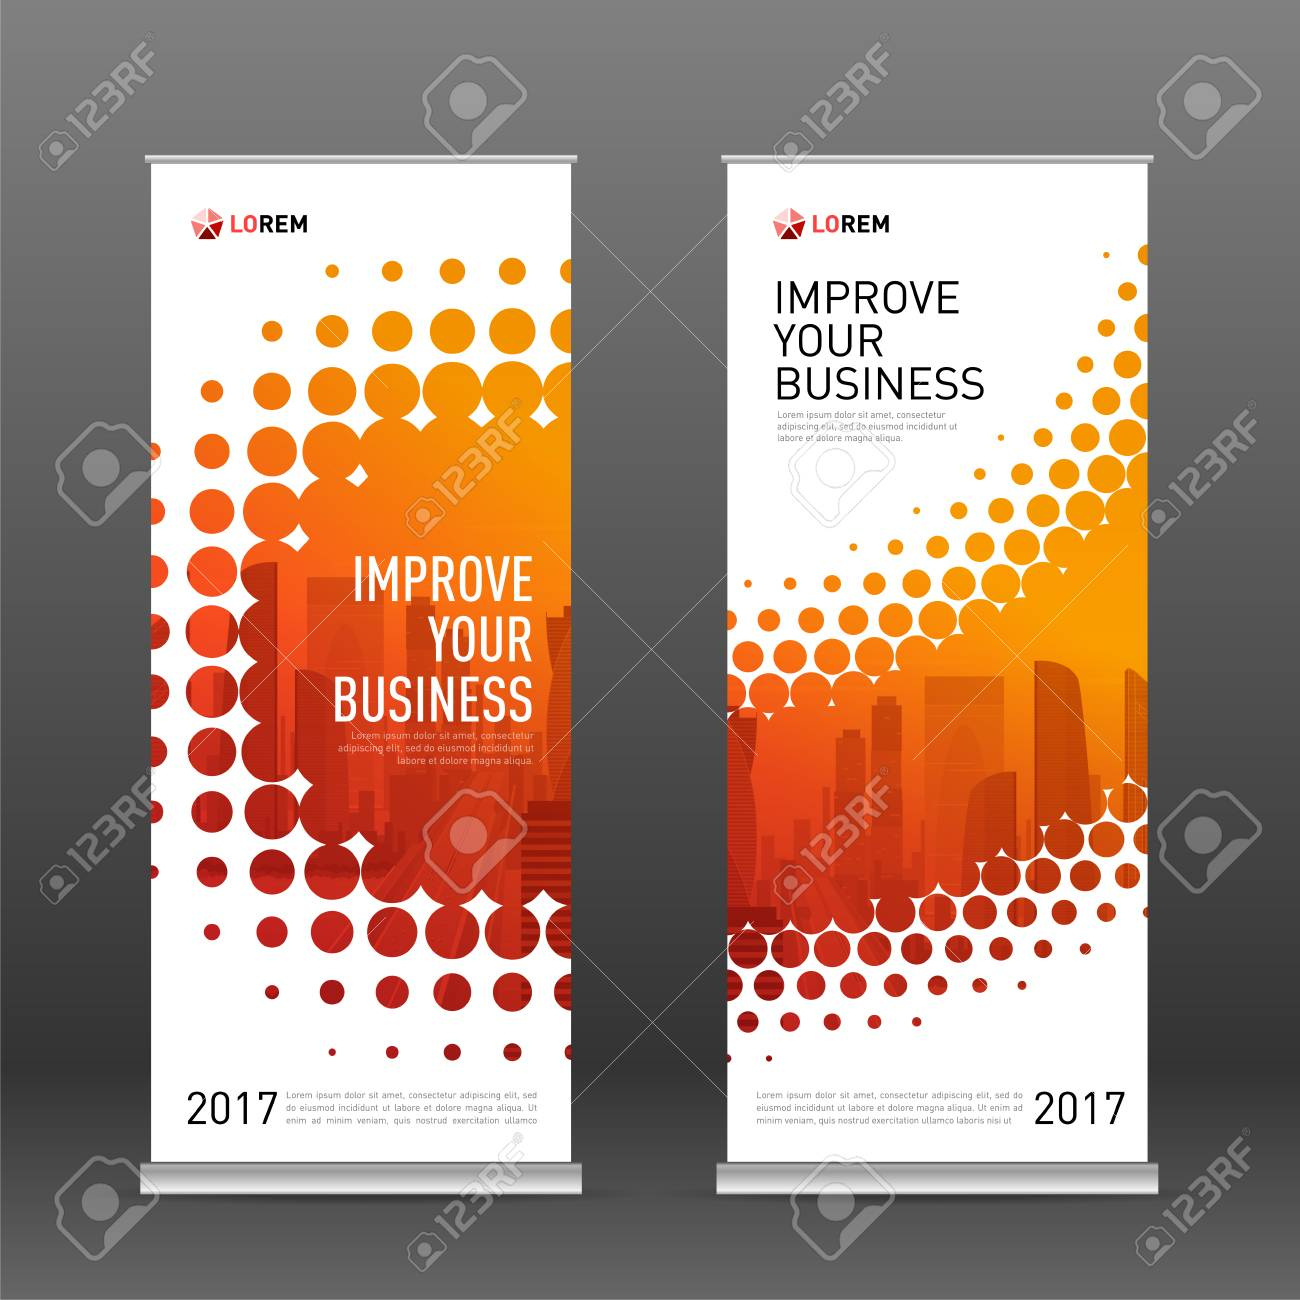 Industrial roll up banner design template. Abstract halftone effect with colored cityscape vector illustration on background. - 90312021